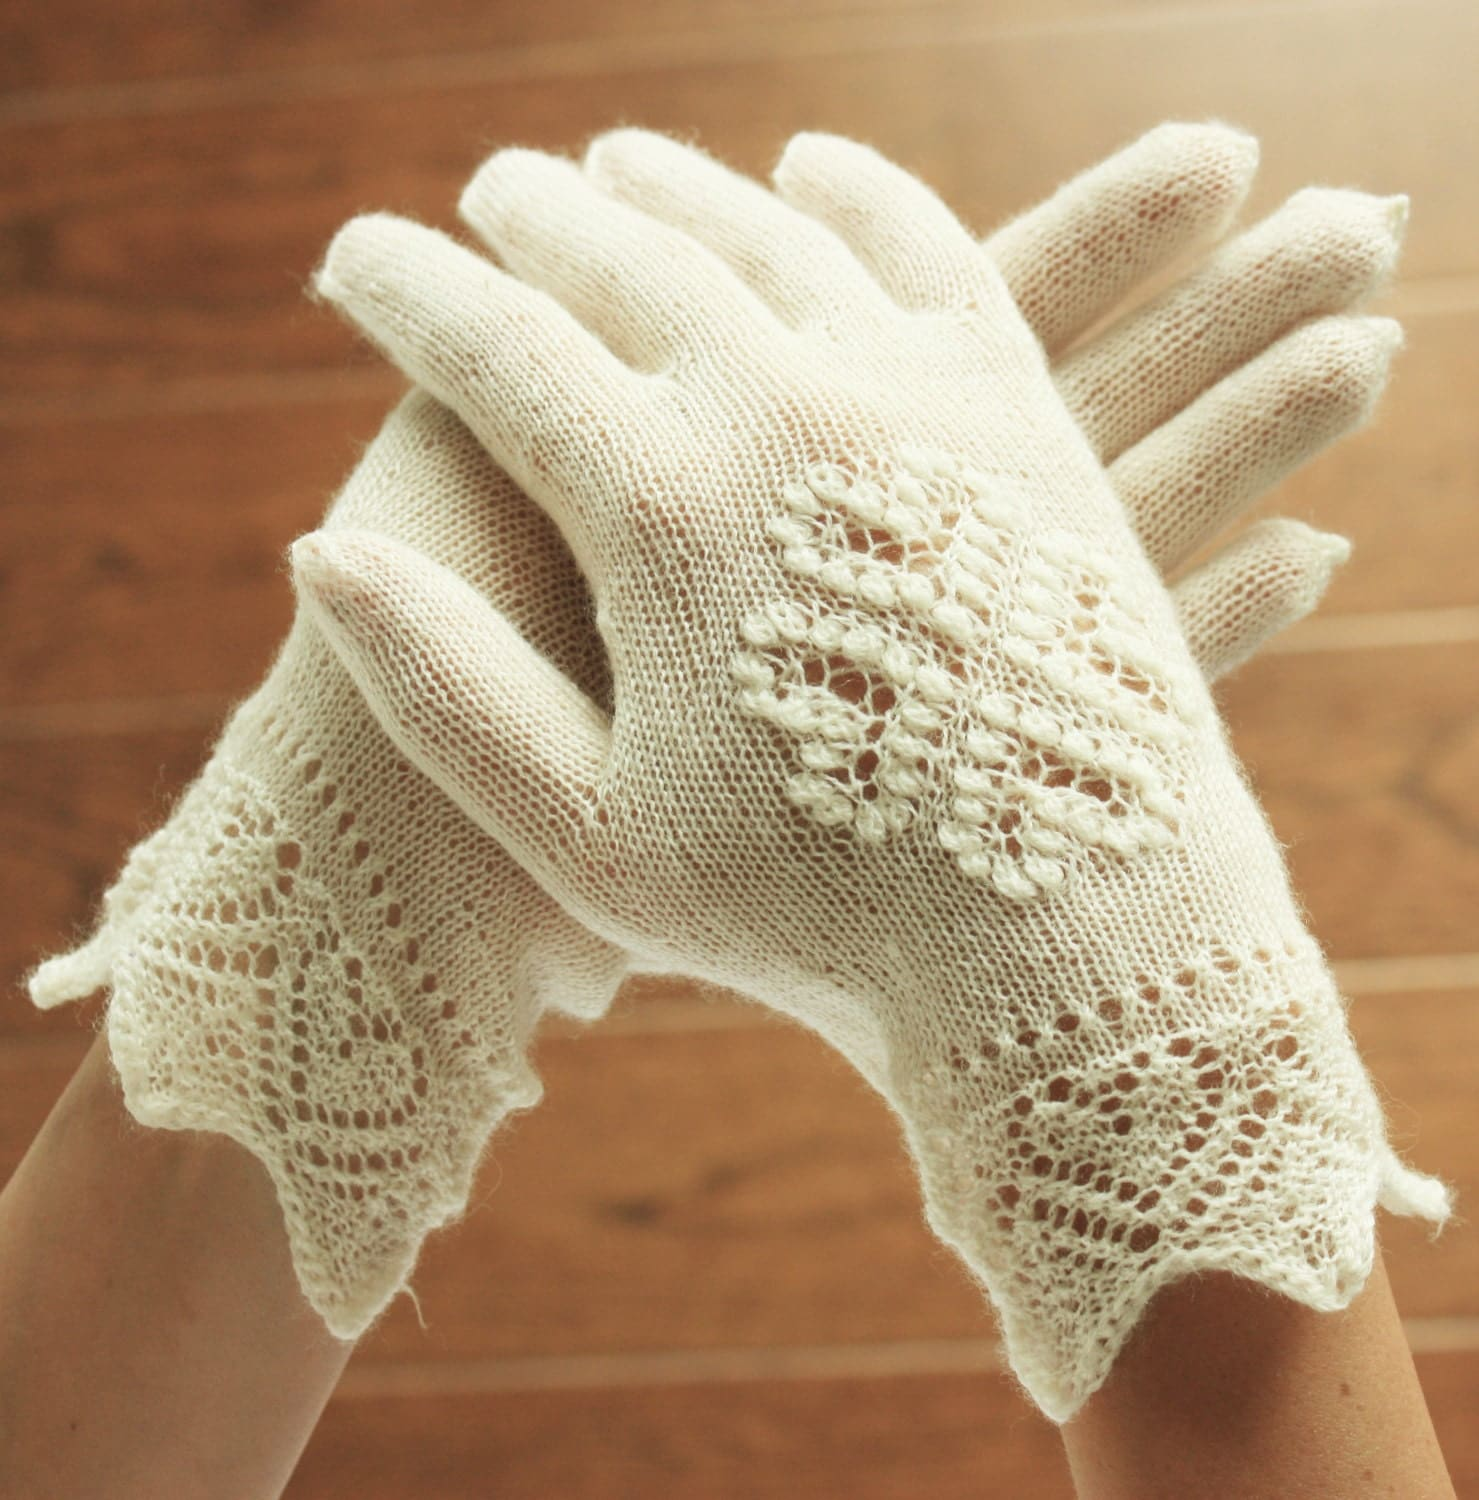 Knitting Pattern For Lace Gloves : Hand-knitted gloves White Estonian Lace Bridal Gloves White